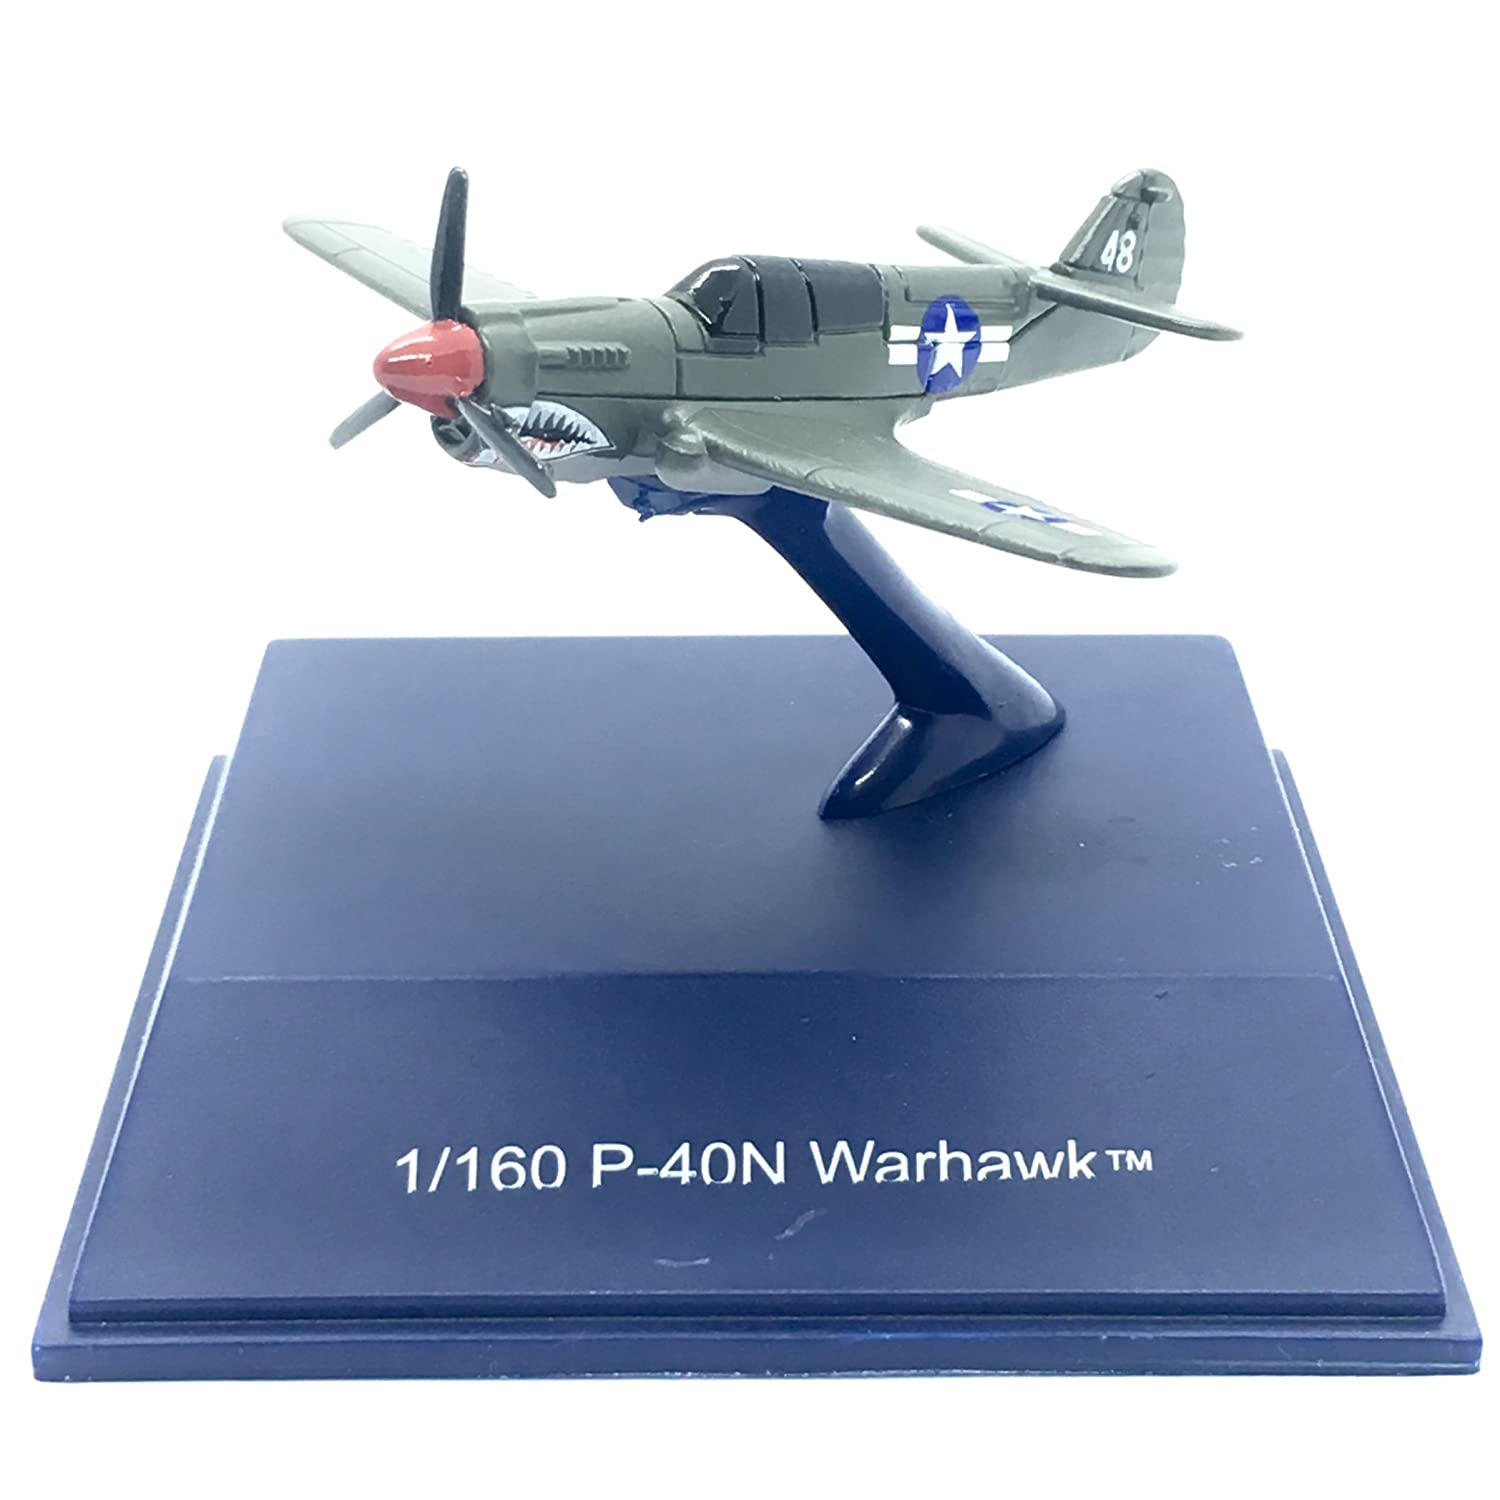 P-40N Warhawk Military Mission 1:160 Scale Die-Cast Metal Aircraft 2017 NewRay Toys Collection